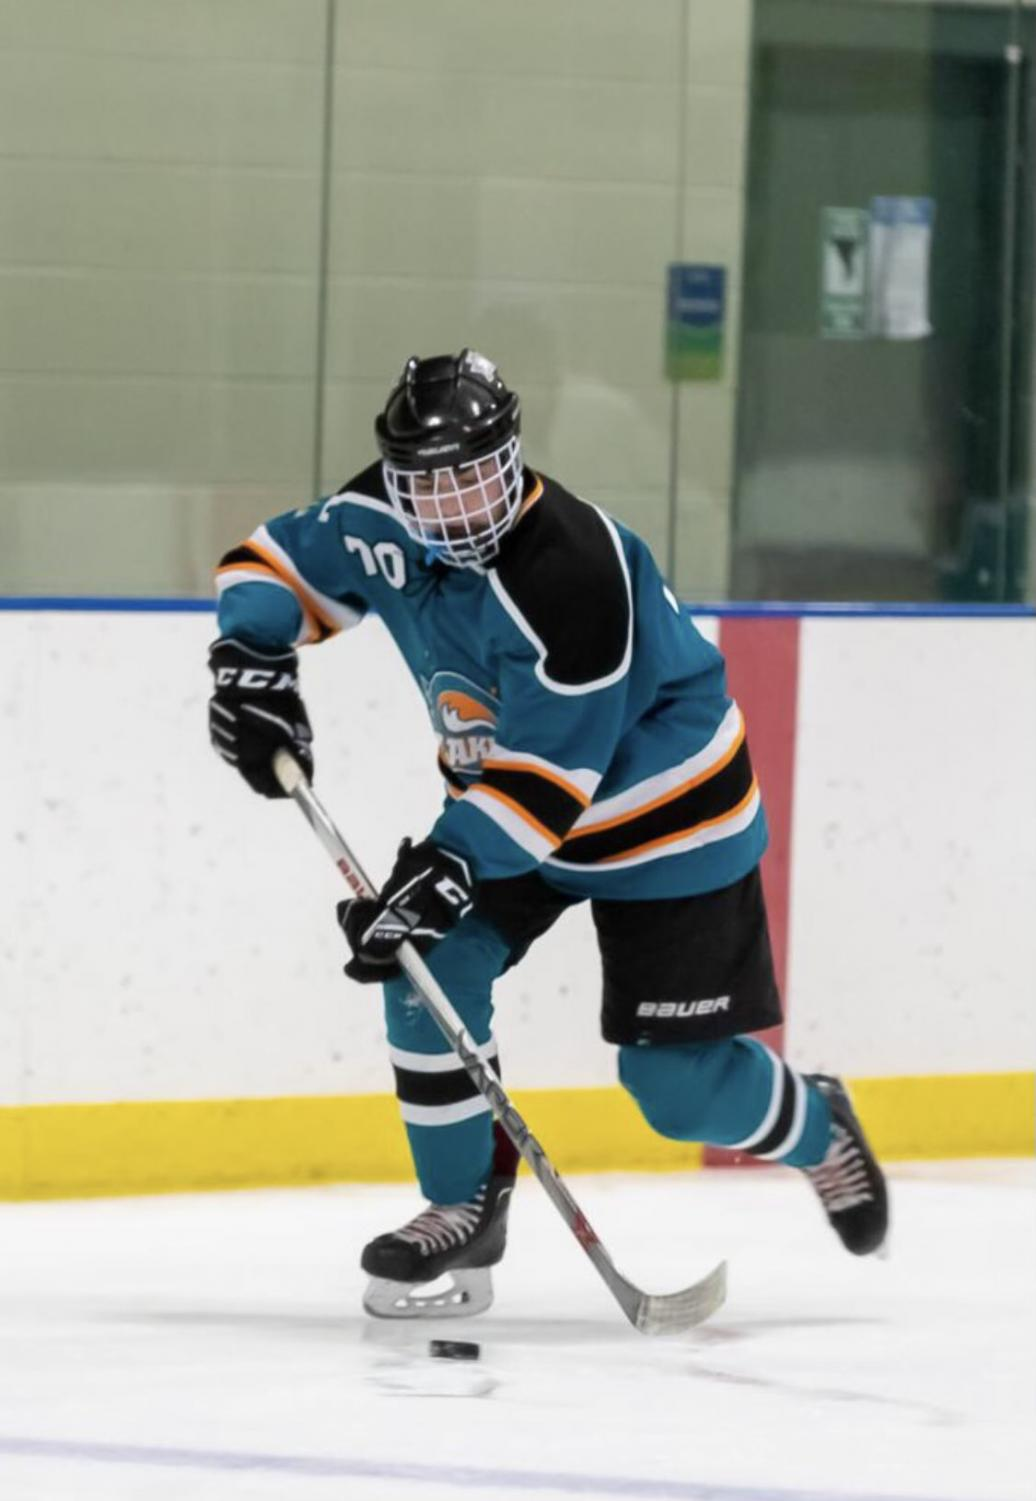 Varsity hockey player Brett Arnopolin takes the puck into offensive position to try and score. Photo Provided by Arnopolin